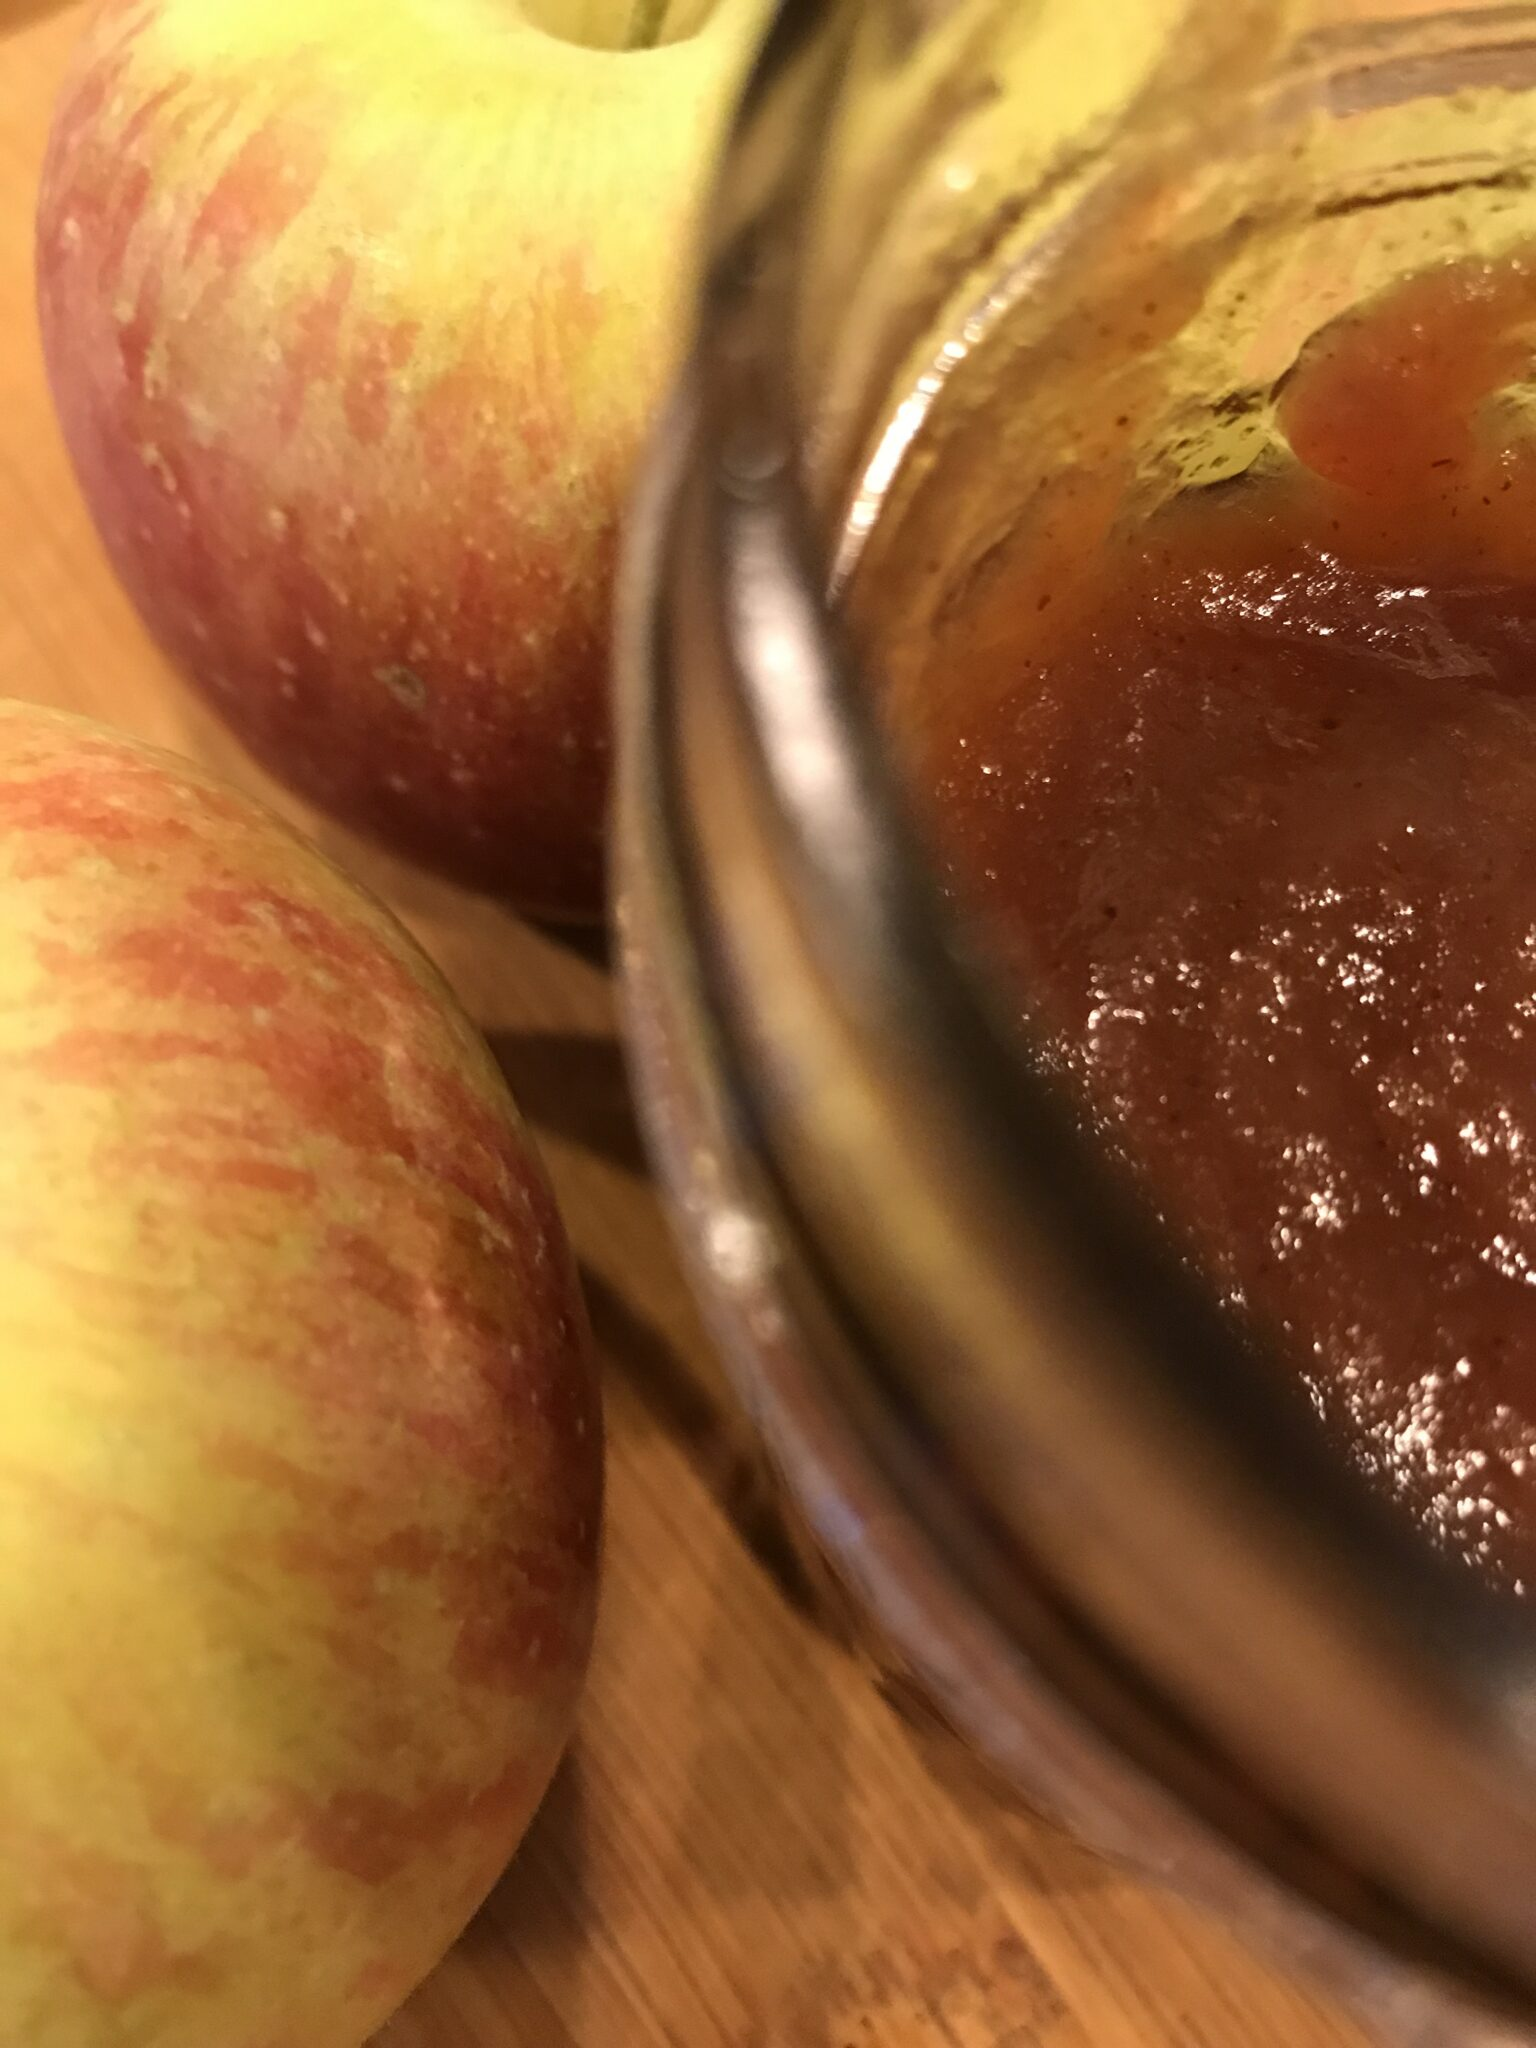 True Lies – Apple Butter Is Not Really Butter